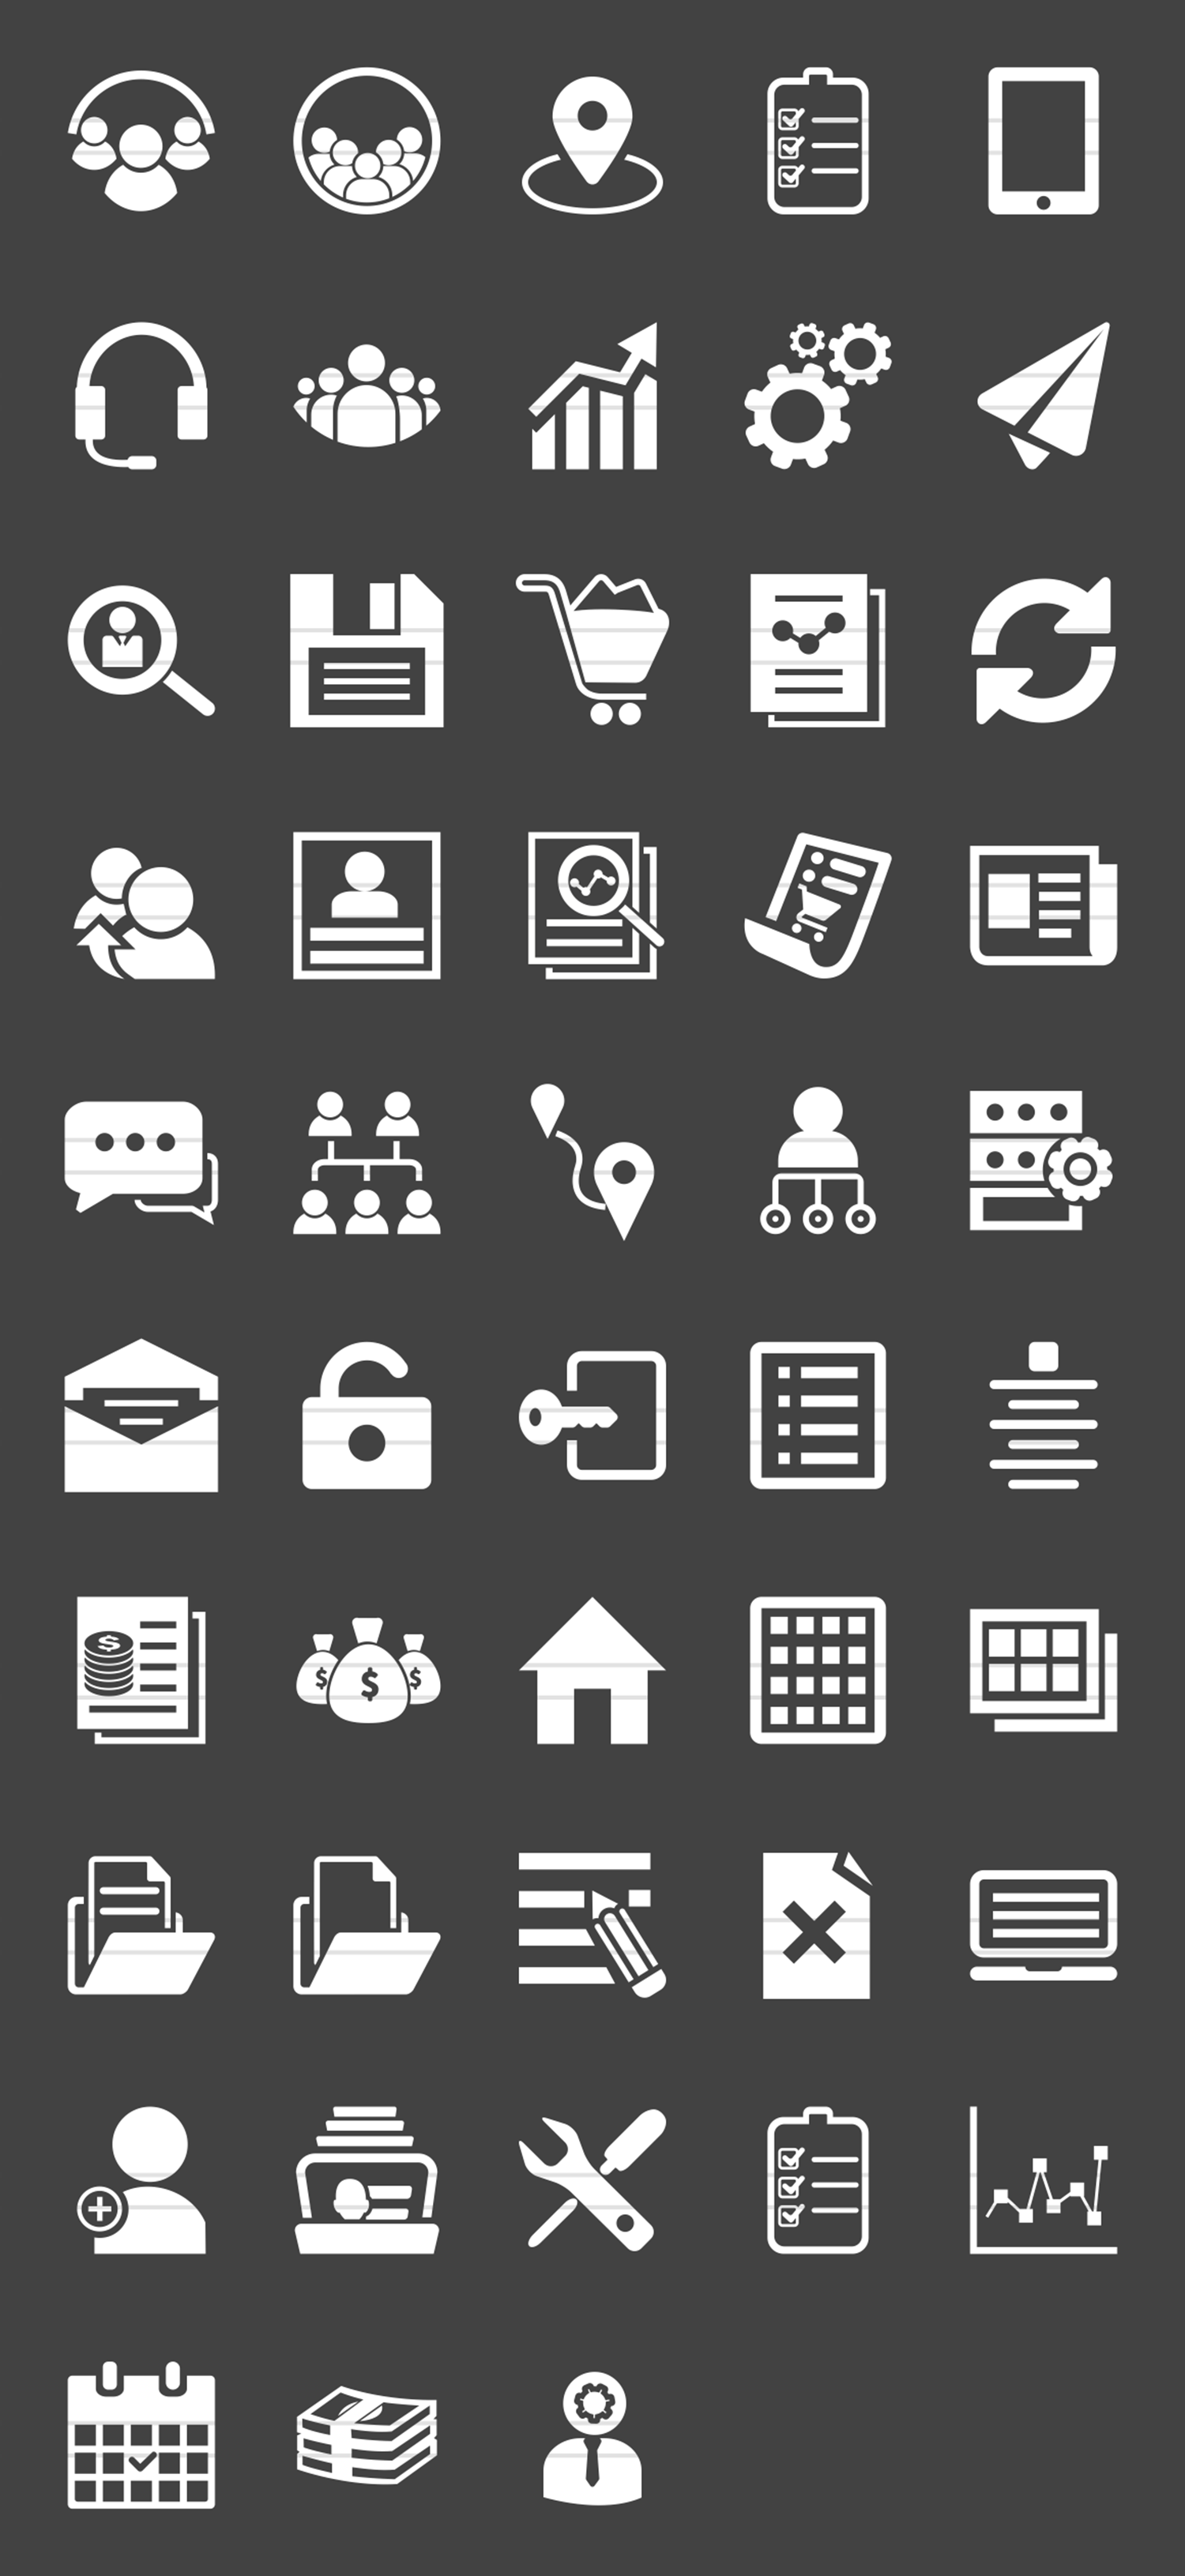 48 Admin Dashboard Glyph Inverted Icons example image 2